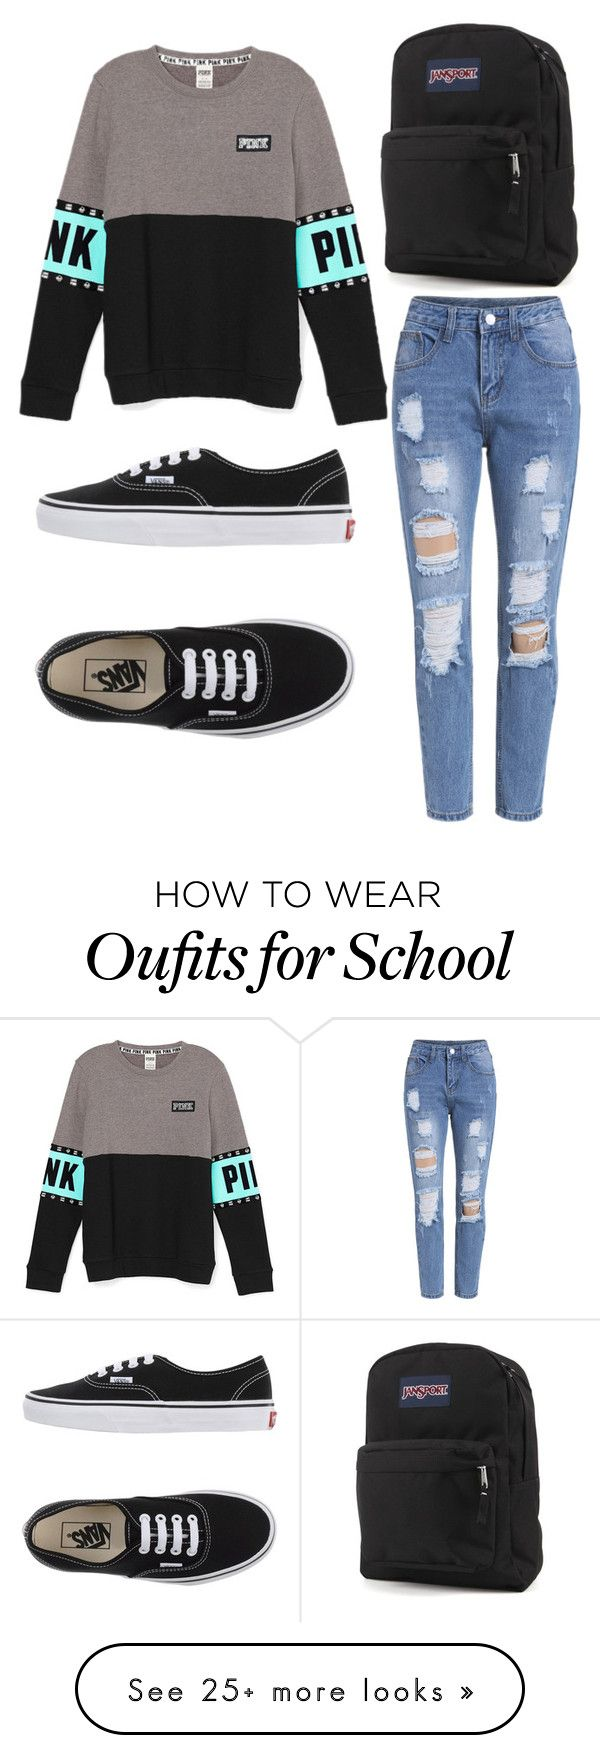 """School Comfy"" by oliviamca on Polyvore featuring Vans, JanSport, women's clothing, women's fashion, women, female, woman, misses and juniors"